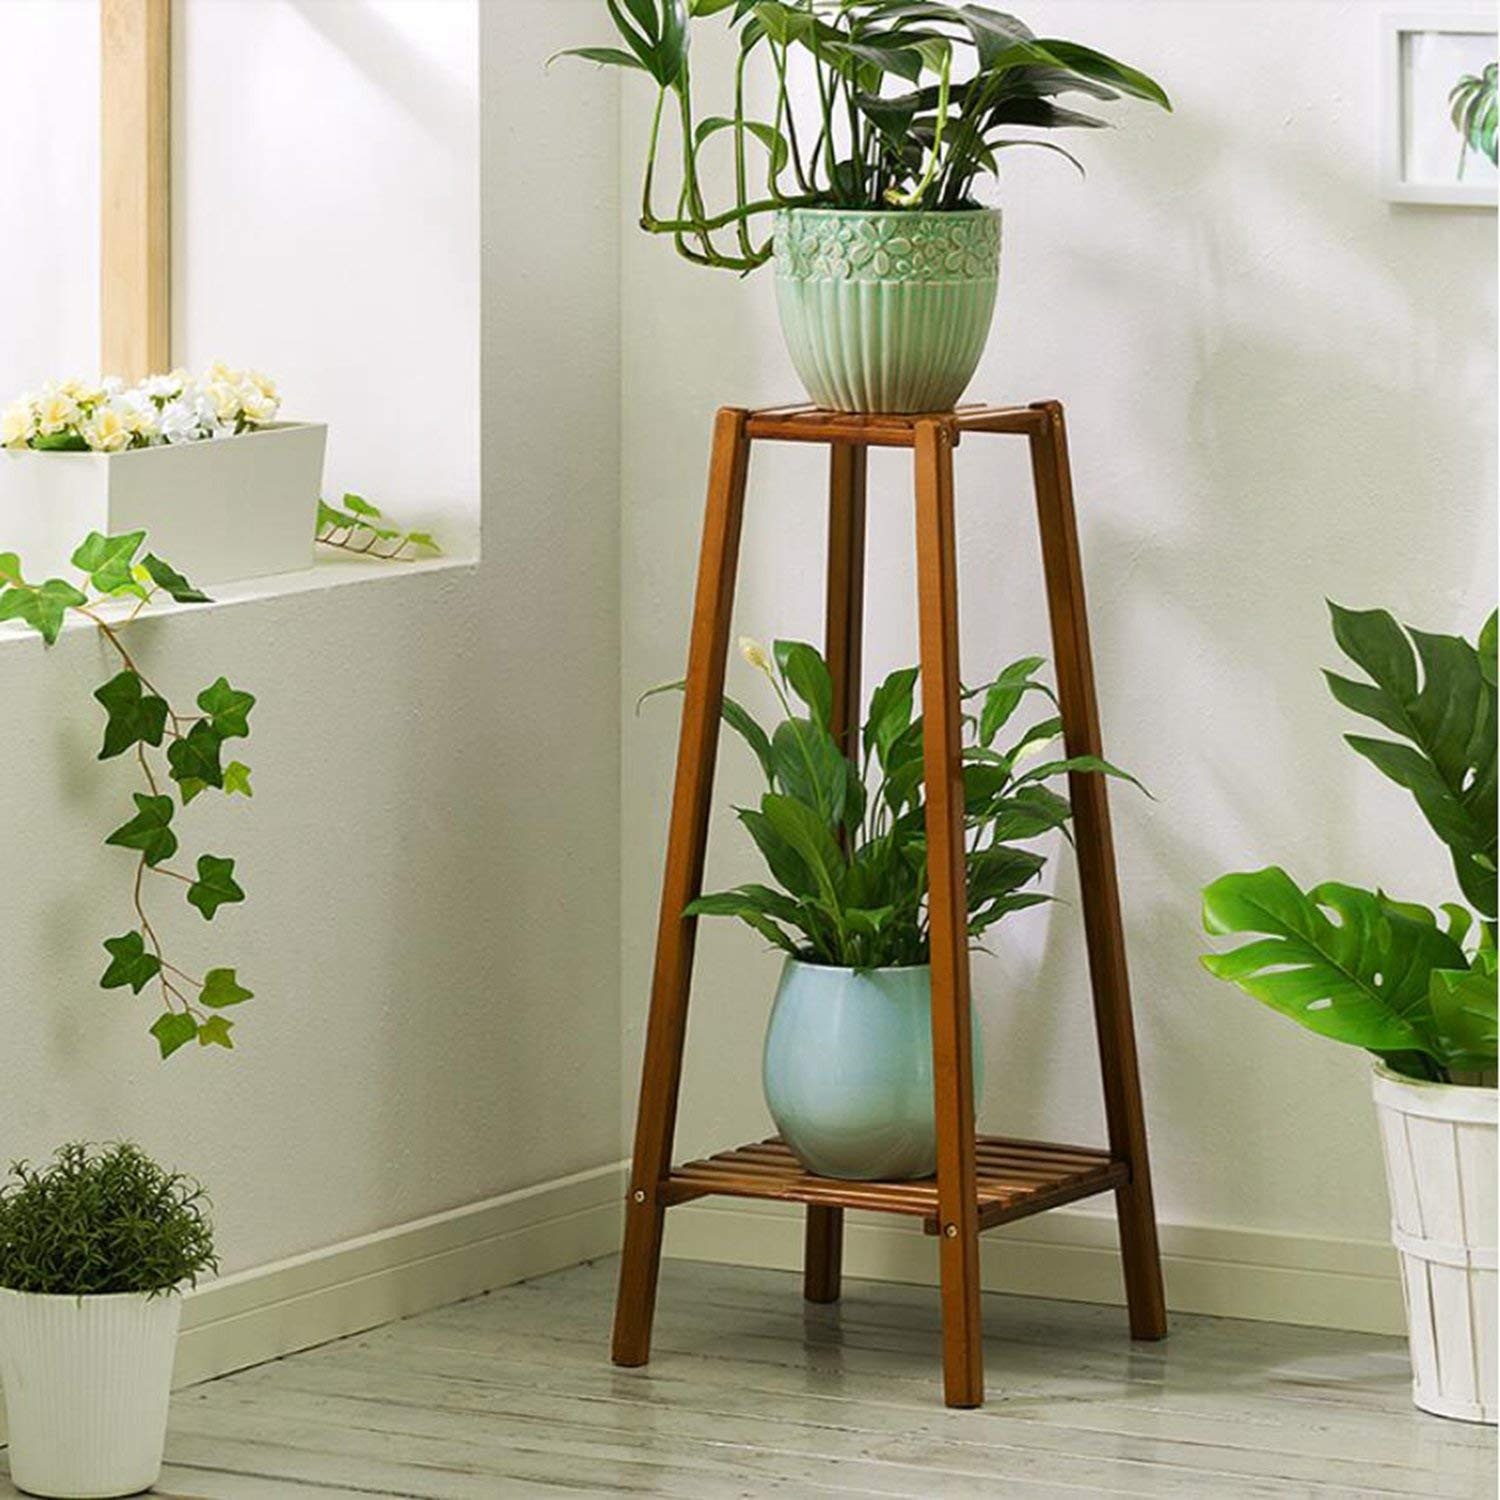 Magshion Bamboo 2 Tier Tall Plant Stand Pot Holder Small Space